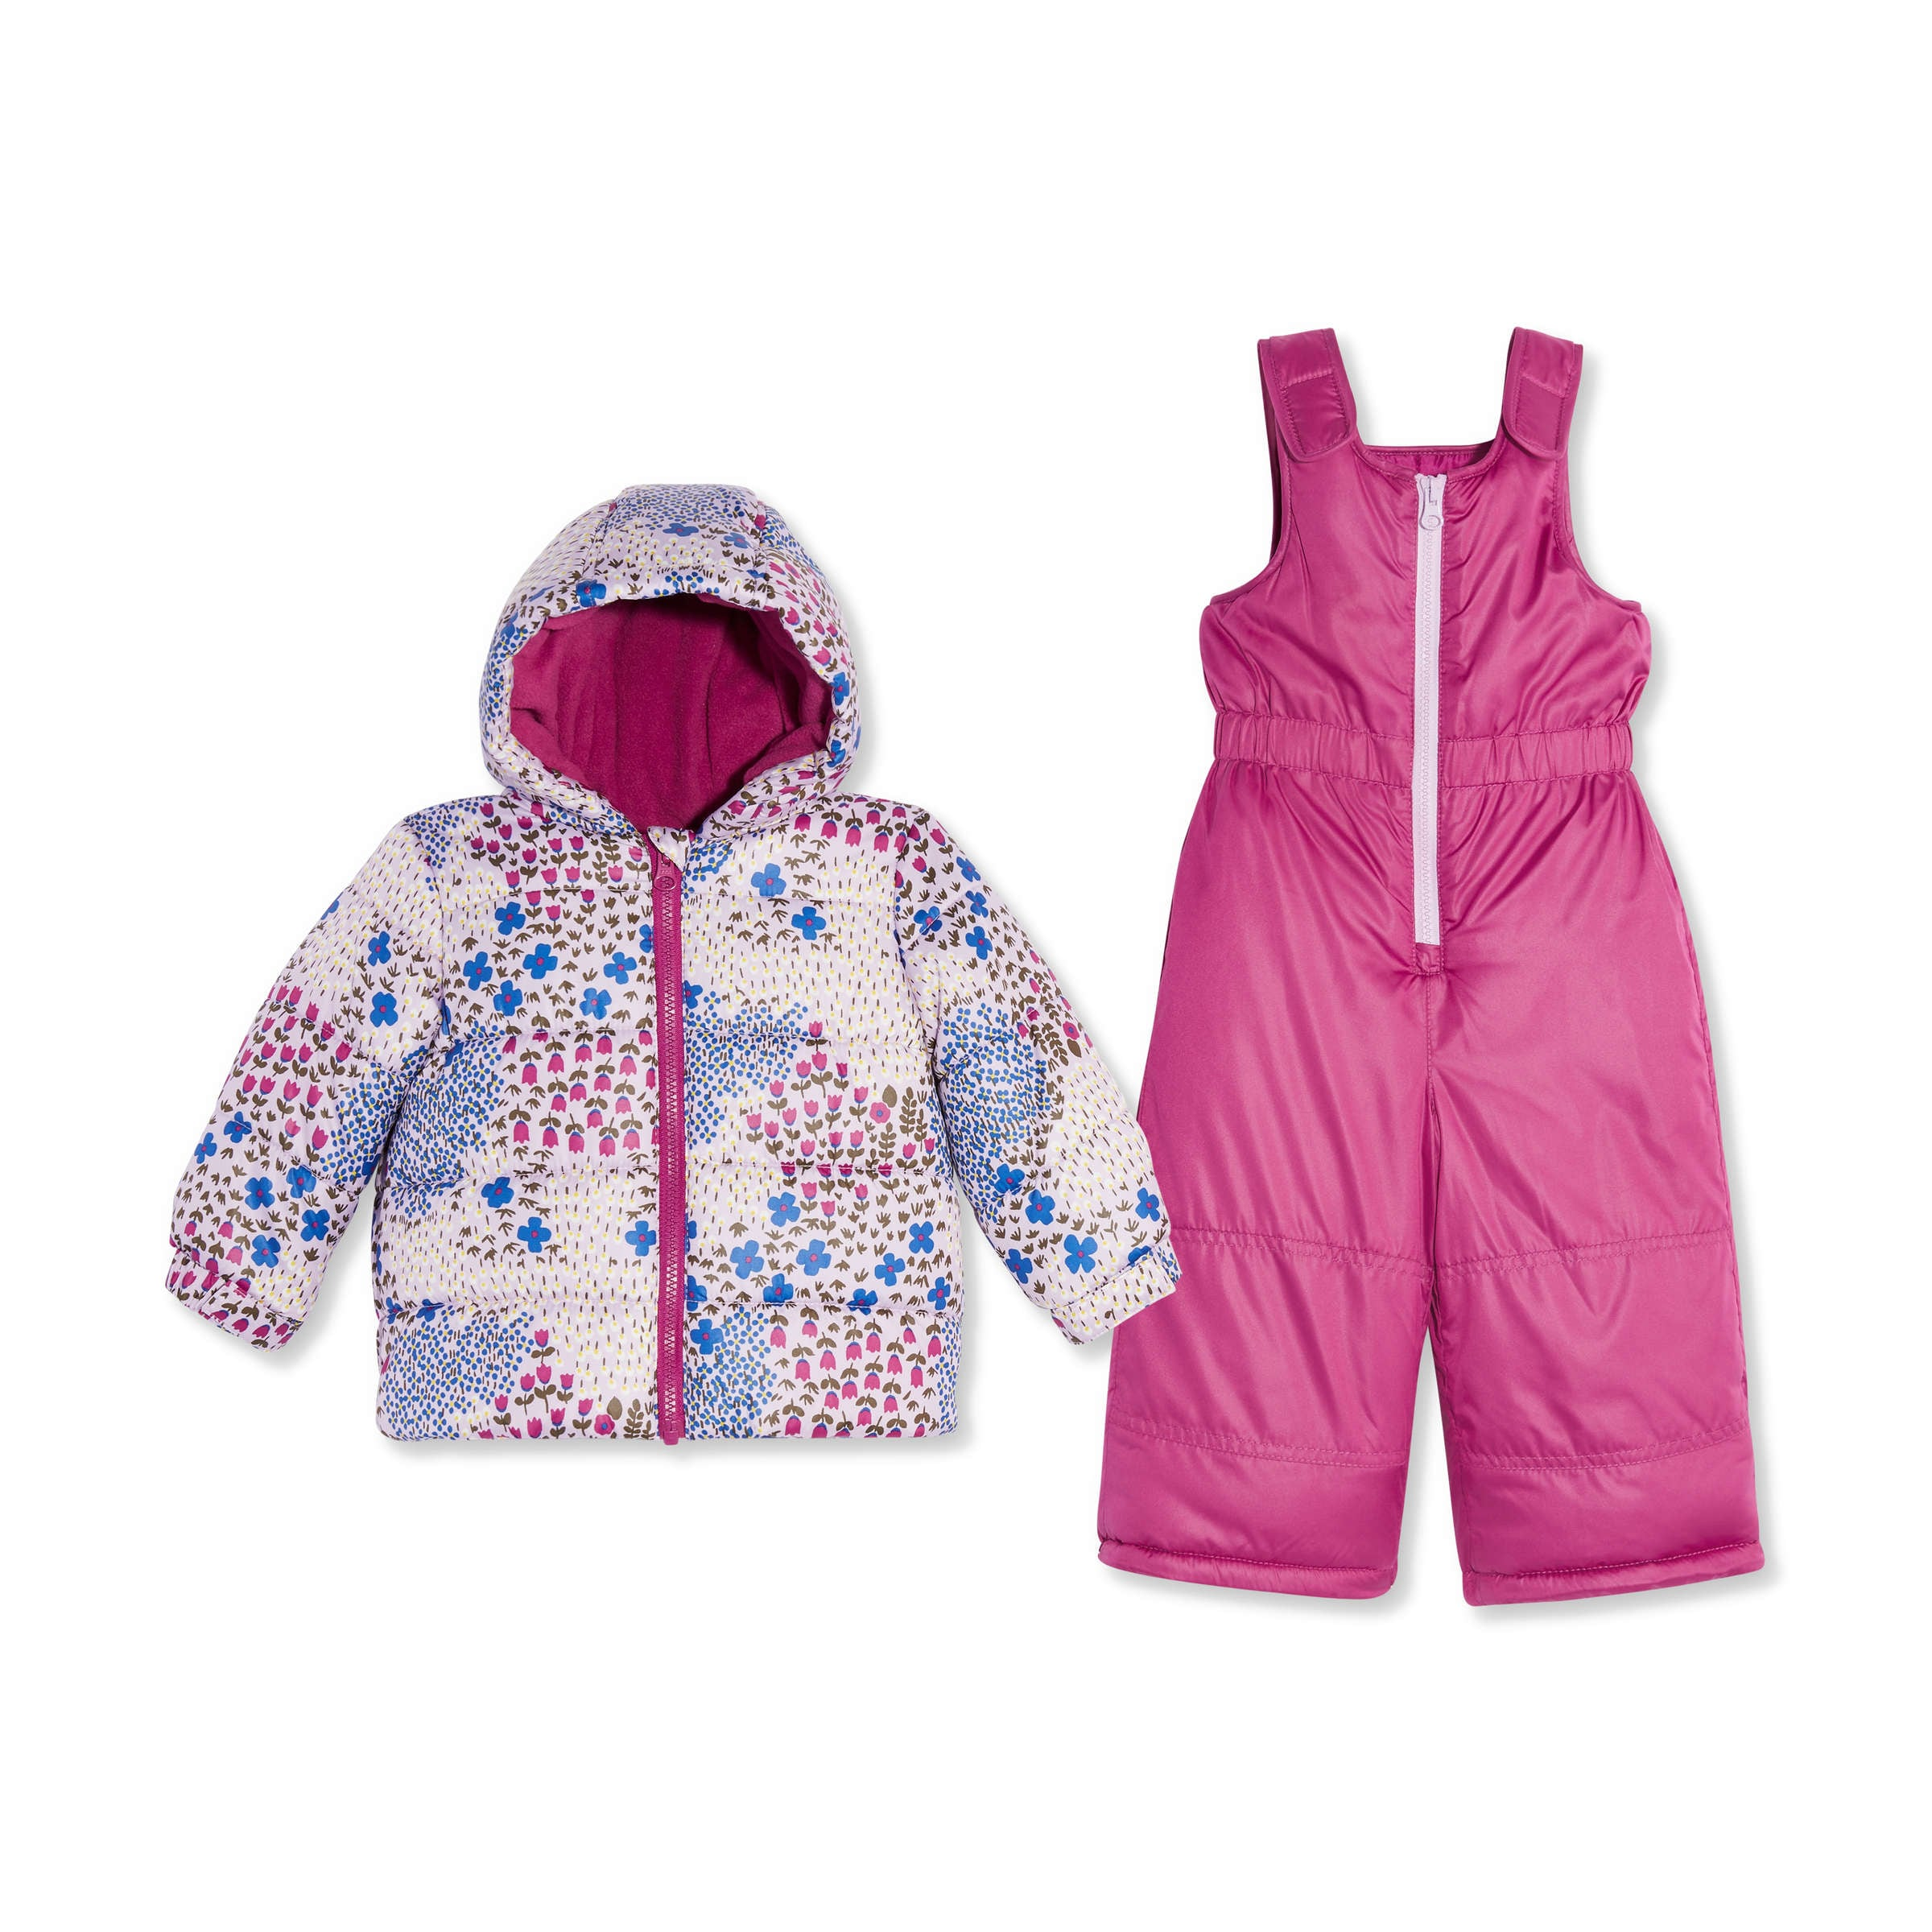 dad9cb8ed Baby Girls  2 Piece Snowsuit Set in Lavender from Joe Fresh